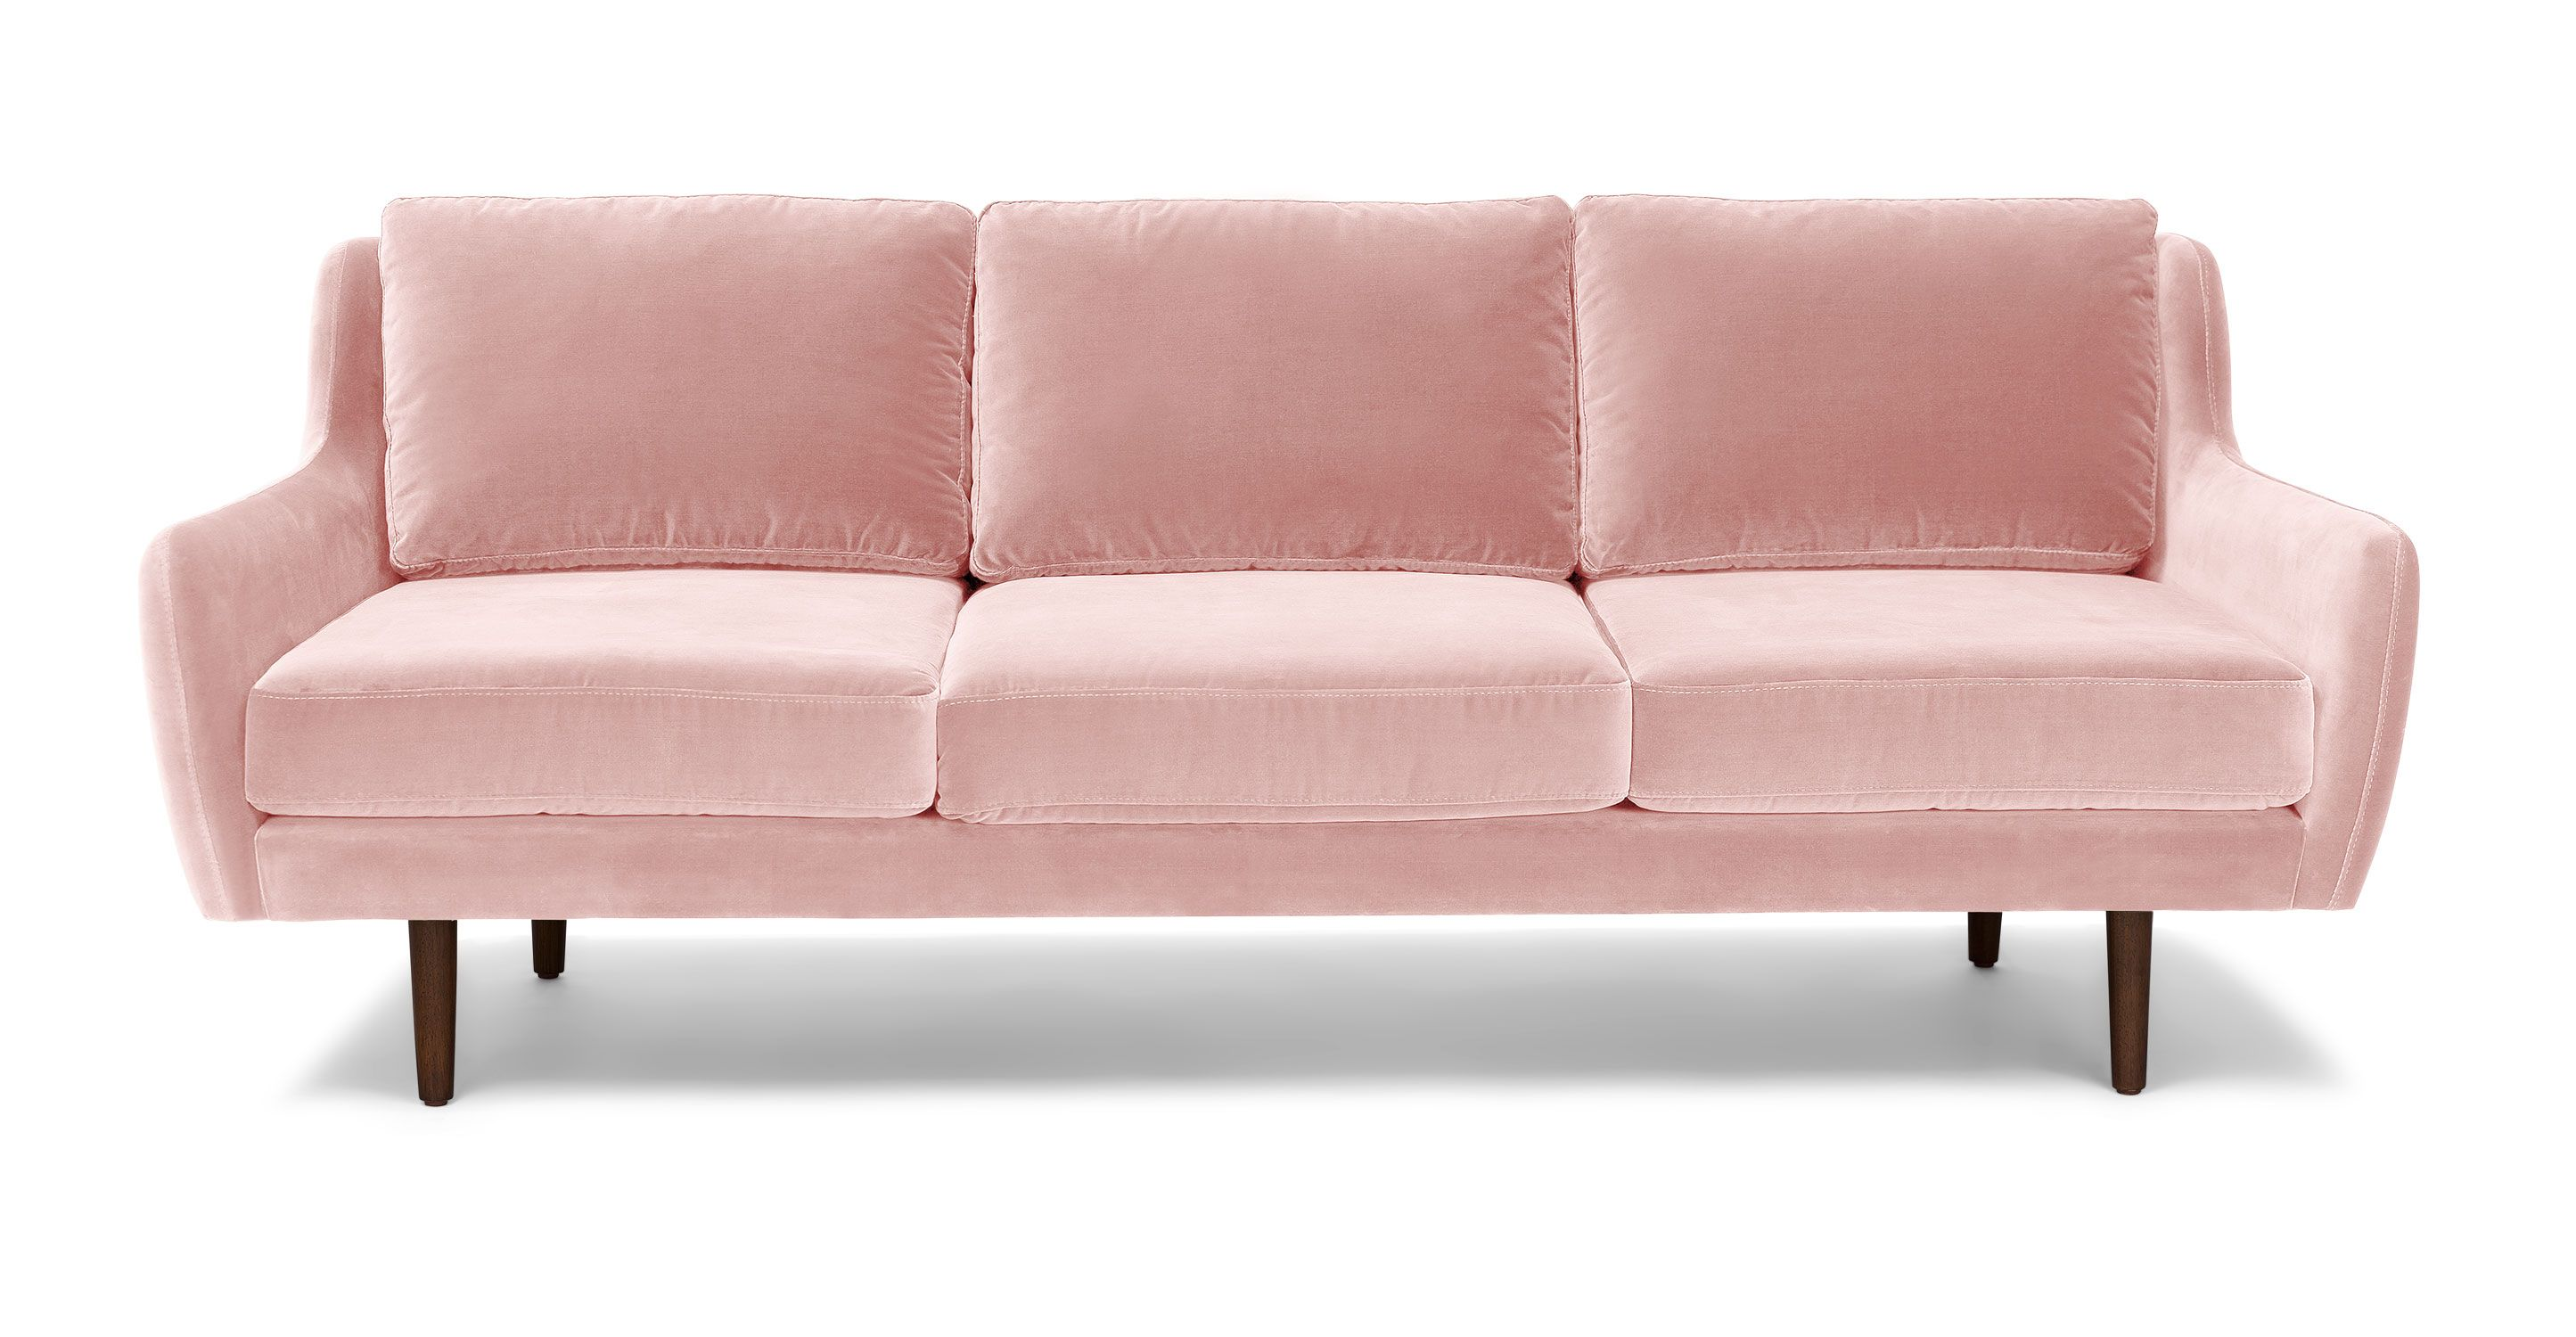 Candy Sessel Harlem Pink Velvet Sofa Walnut Wood Legs Article Matrix Contemporary